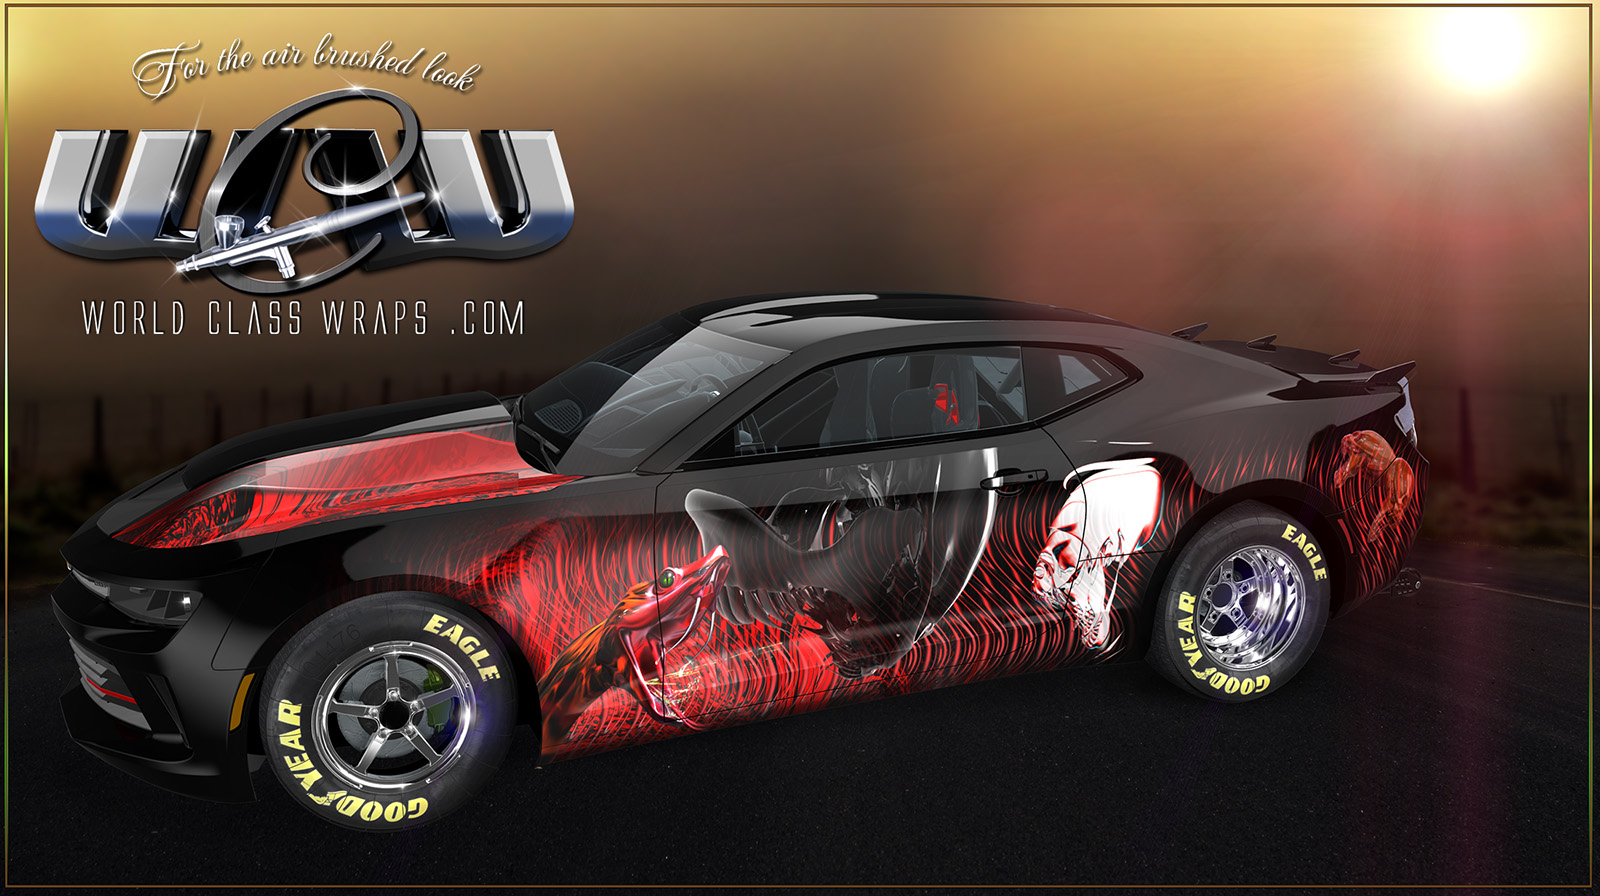 CUSTOM CAMARO GRAPHICS